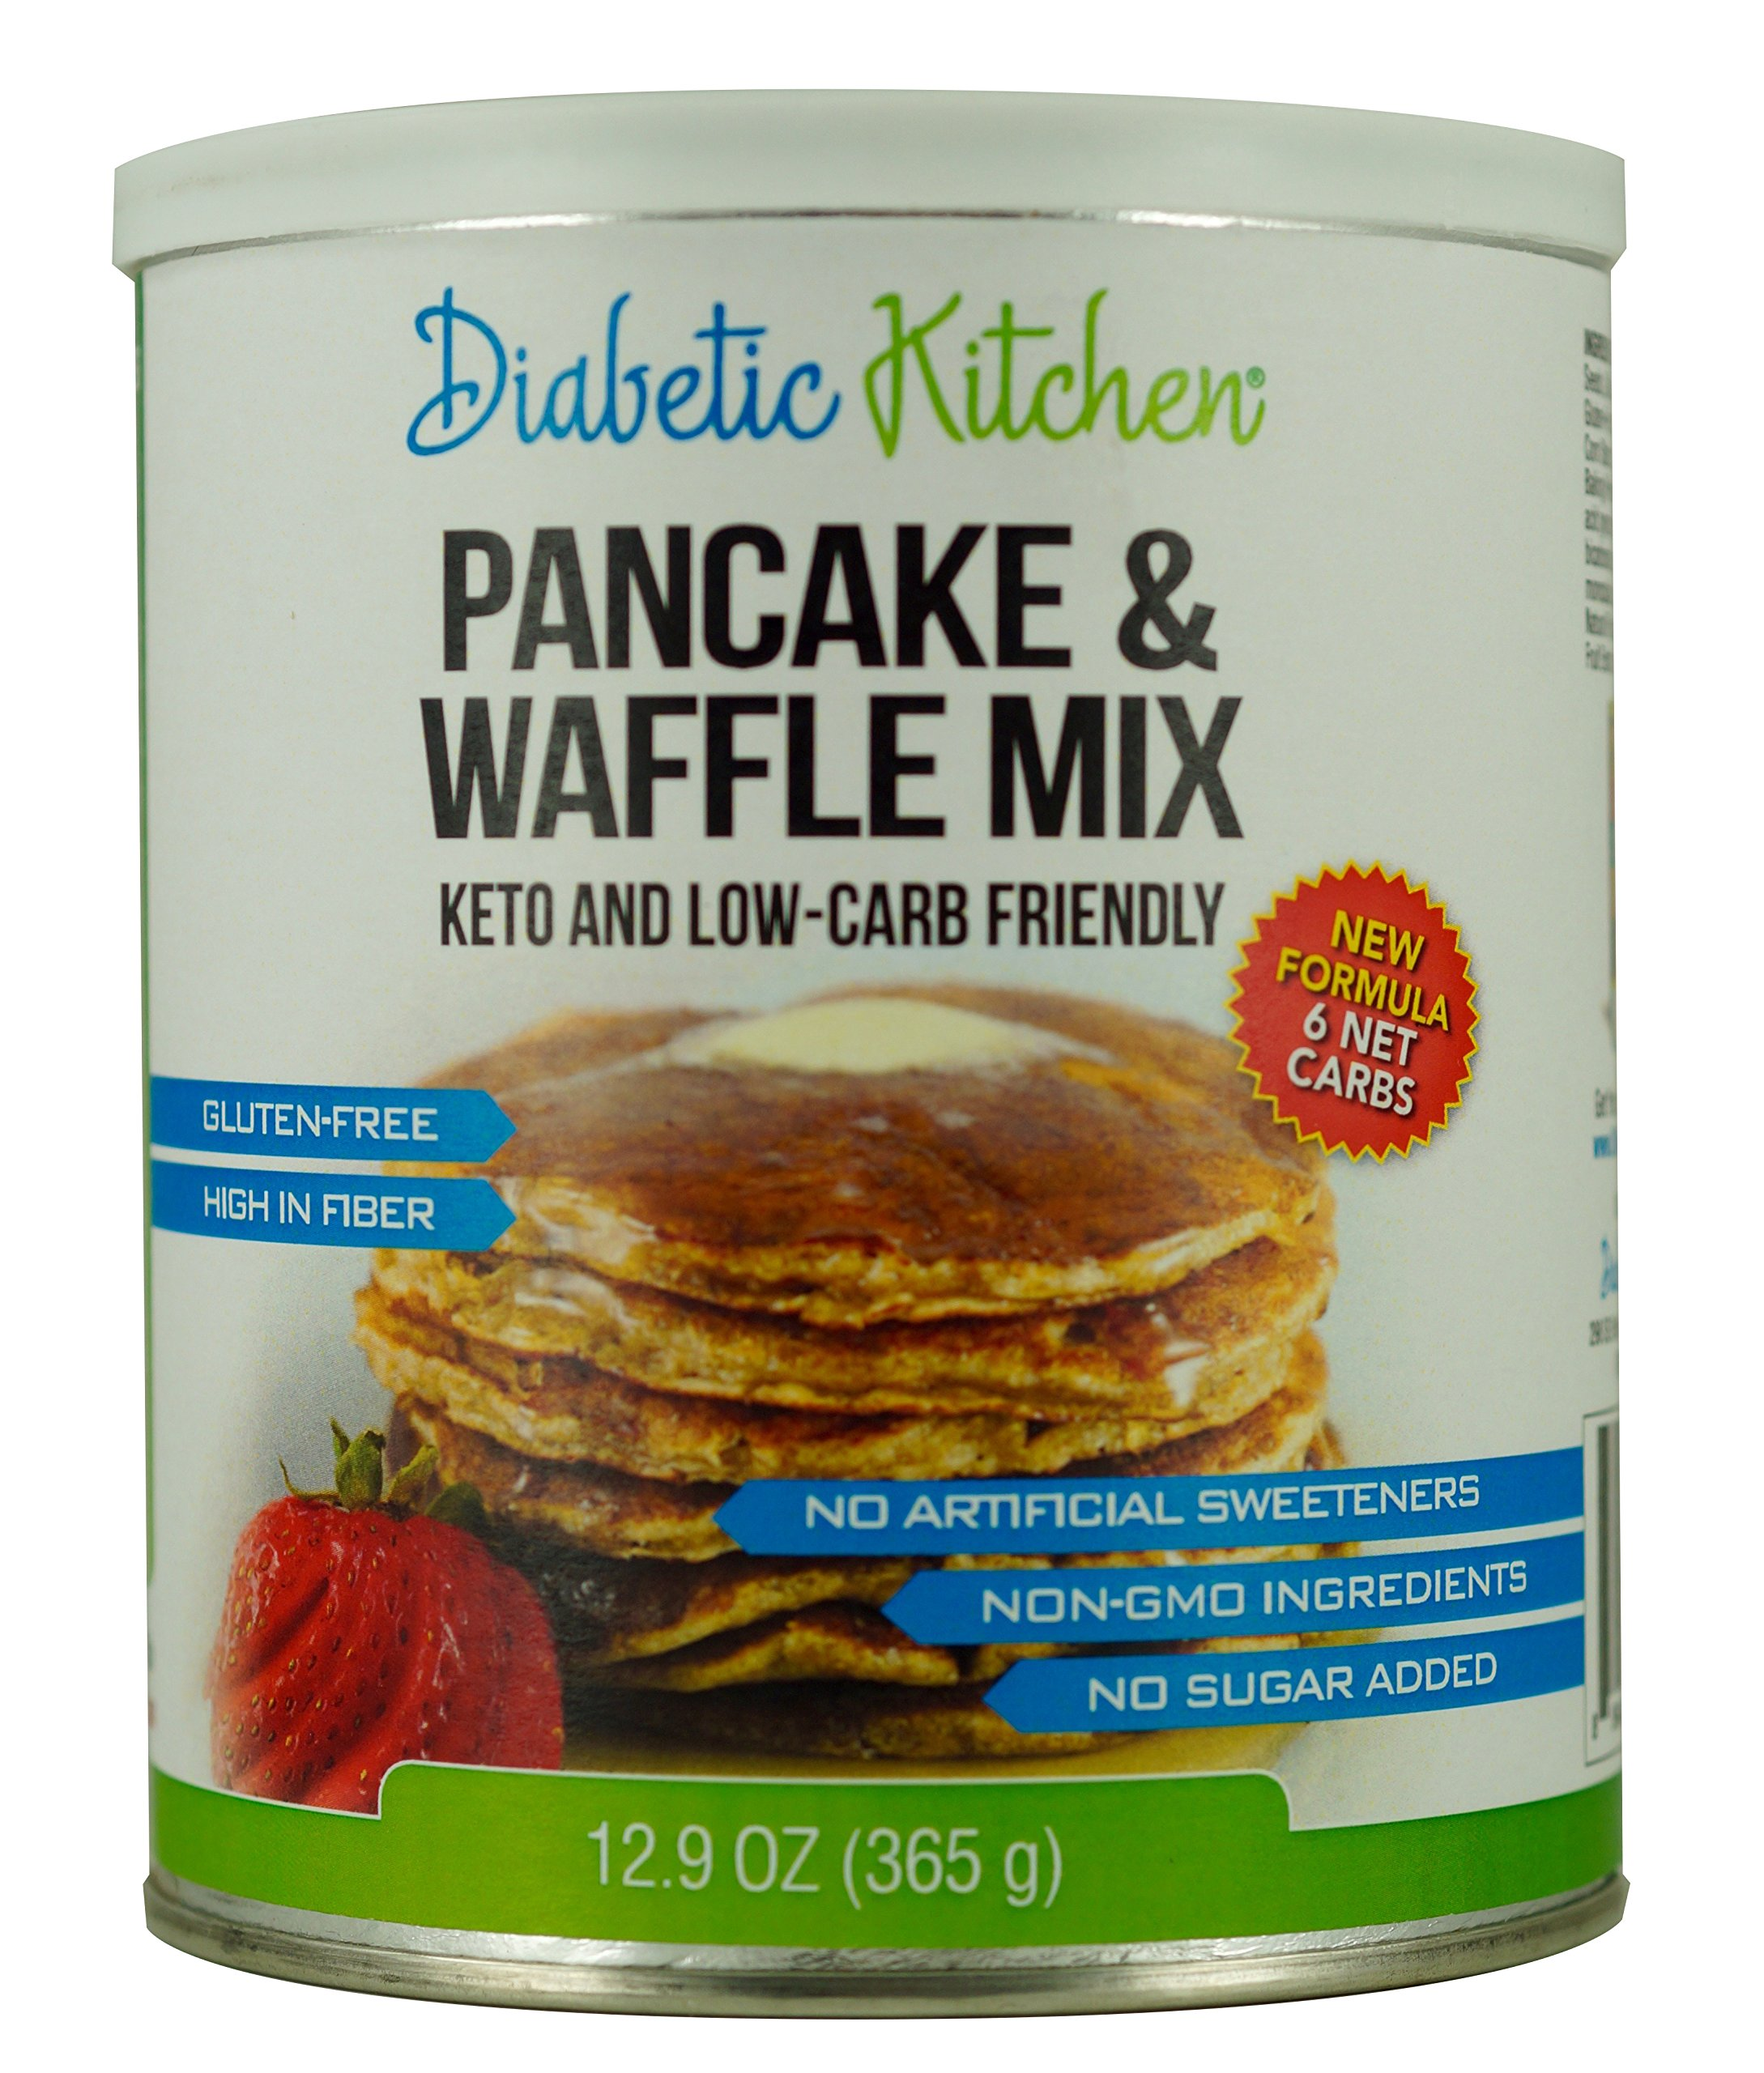 Diabetic Kitchen Pancake & Waffle Mix Is Keto-Friendly, Low-Carb, Gluten-Free, High-Fiber, No Artificial Sweeteners or Sugar Alcohols, Non-GMO and No Sugar Added (13 Servings)